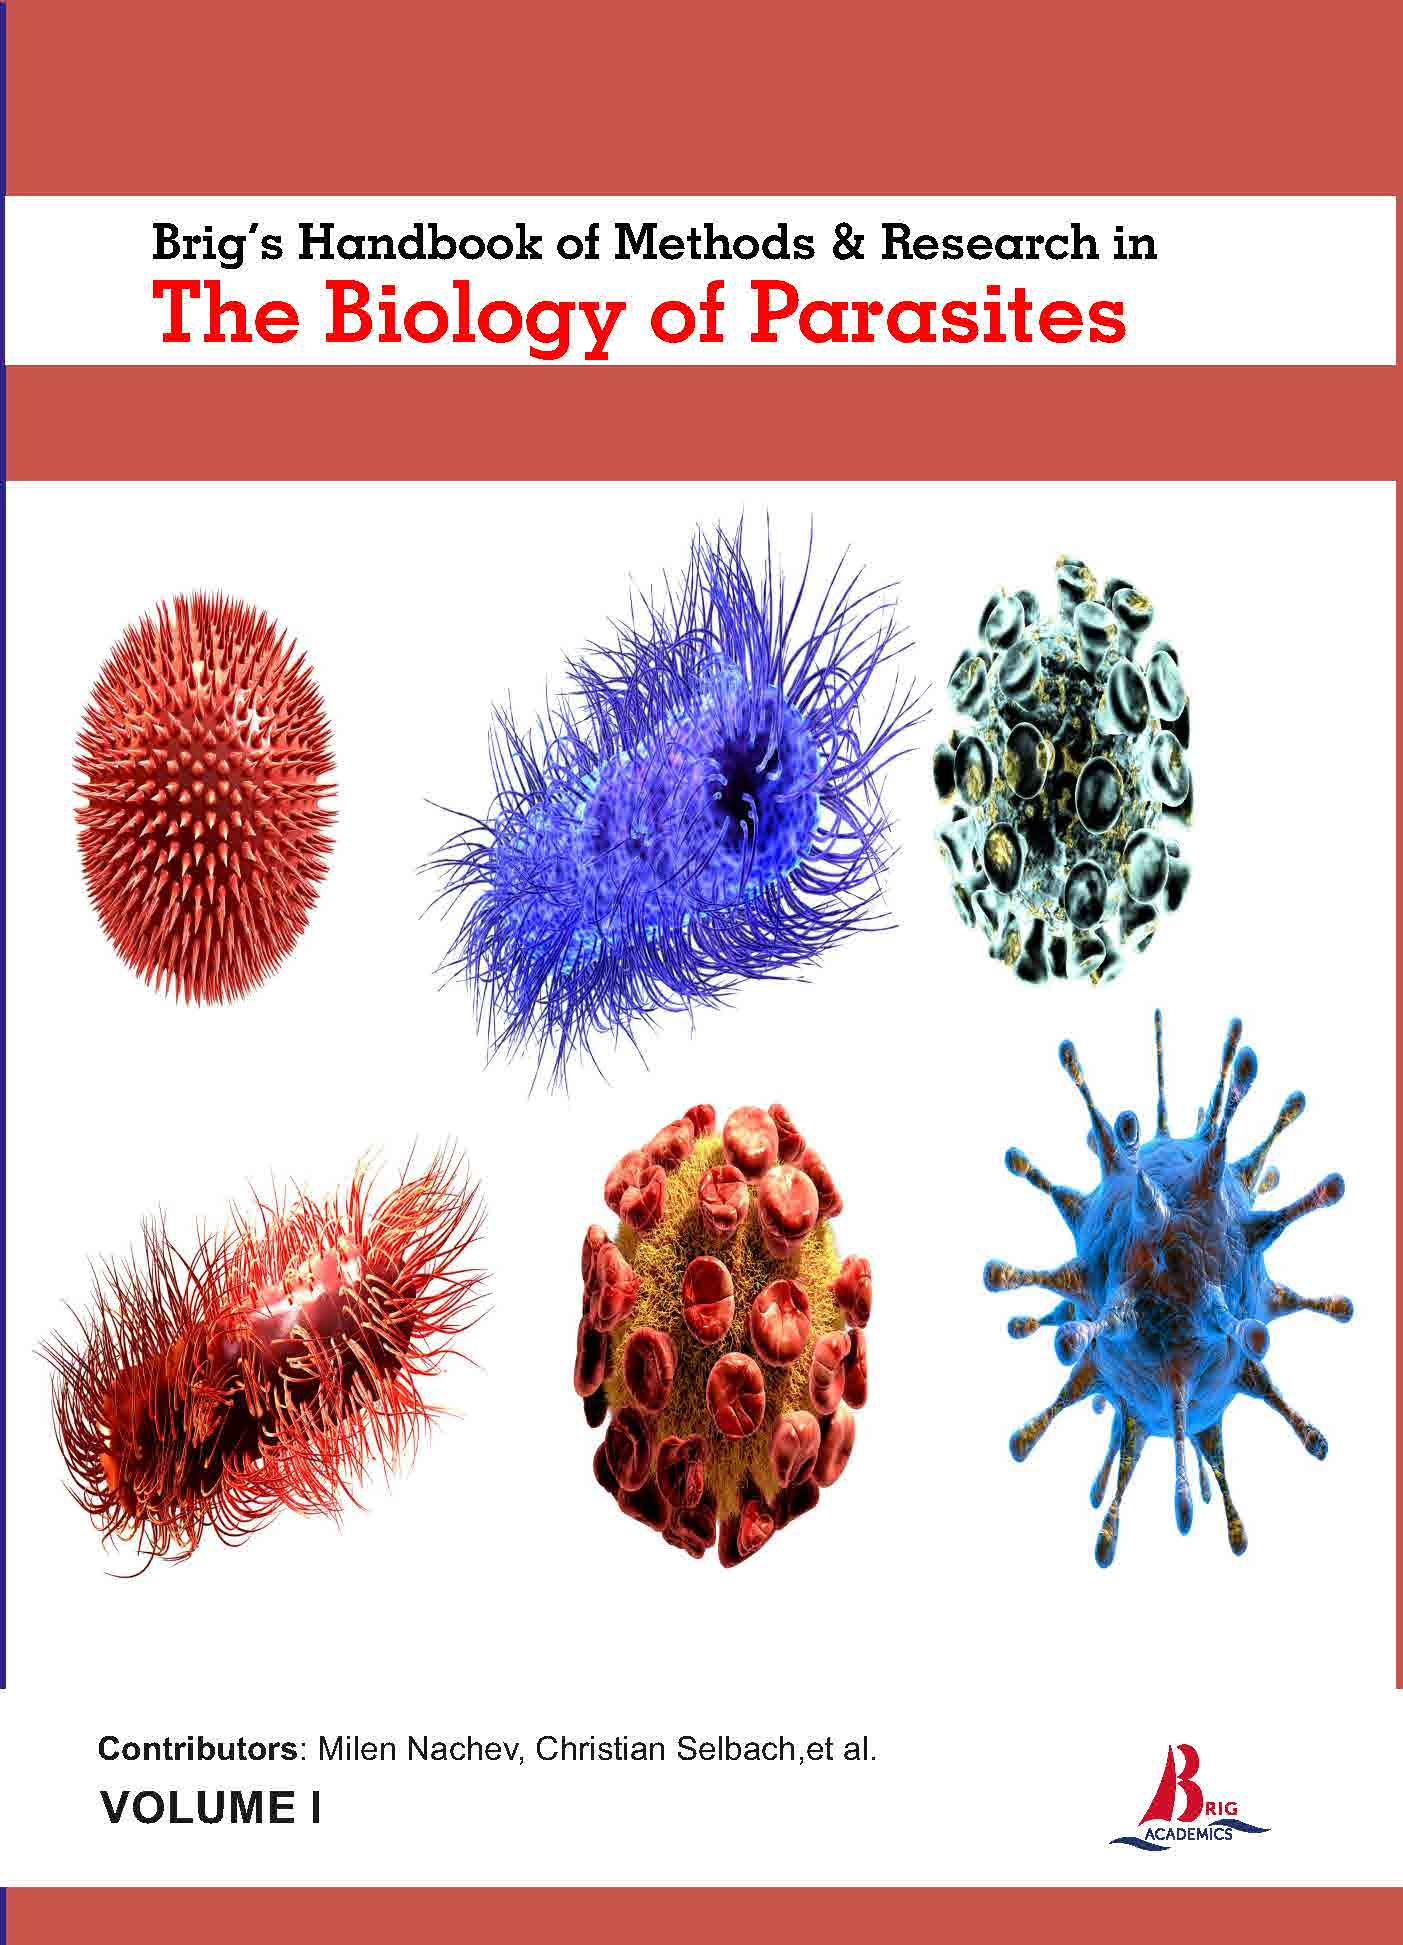 Brig's Handbook of Methods & Research in The Biology of Parasites